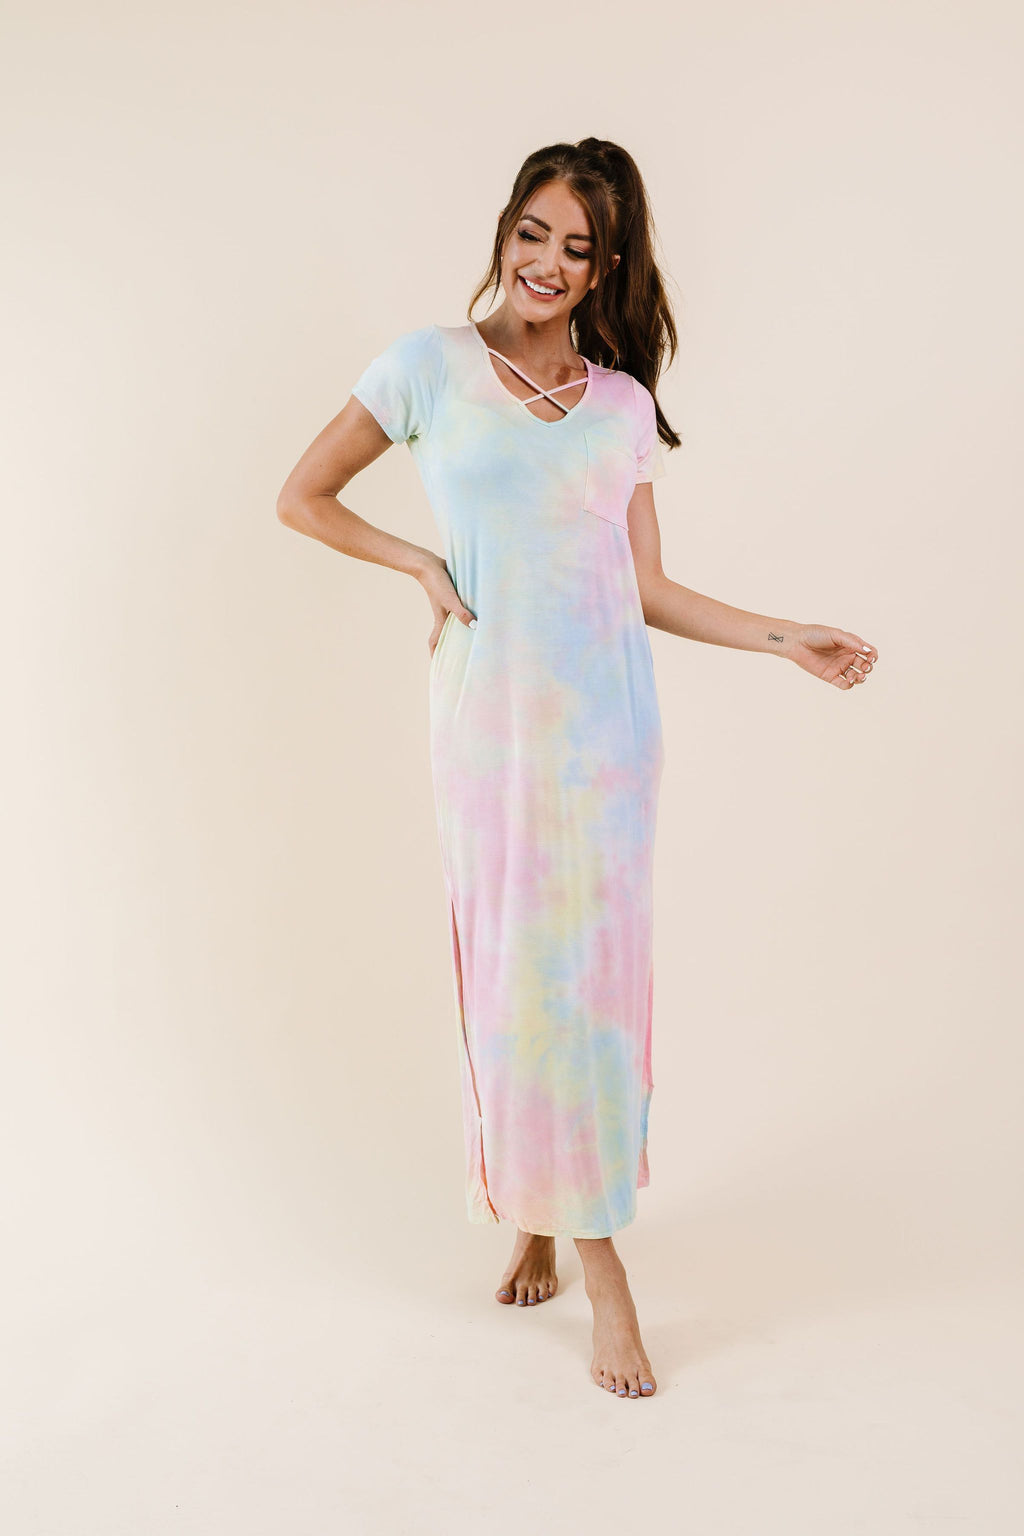 Crossing Over Tie Dye Maxi-1XL, 2XL, 3XL, 8-27-2020, BFCM2020, Dresses, Group A, Group B, Group C, Group D, Group T, Large, Medium, Plus, Small, XL, XS-Womens Artisan USA American Made Clothing Accessories